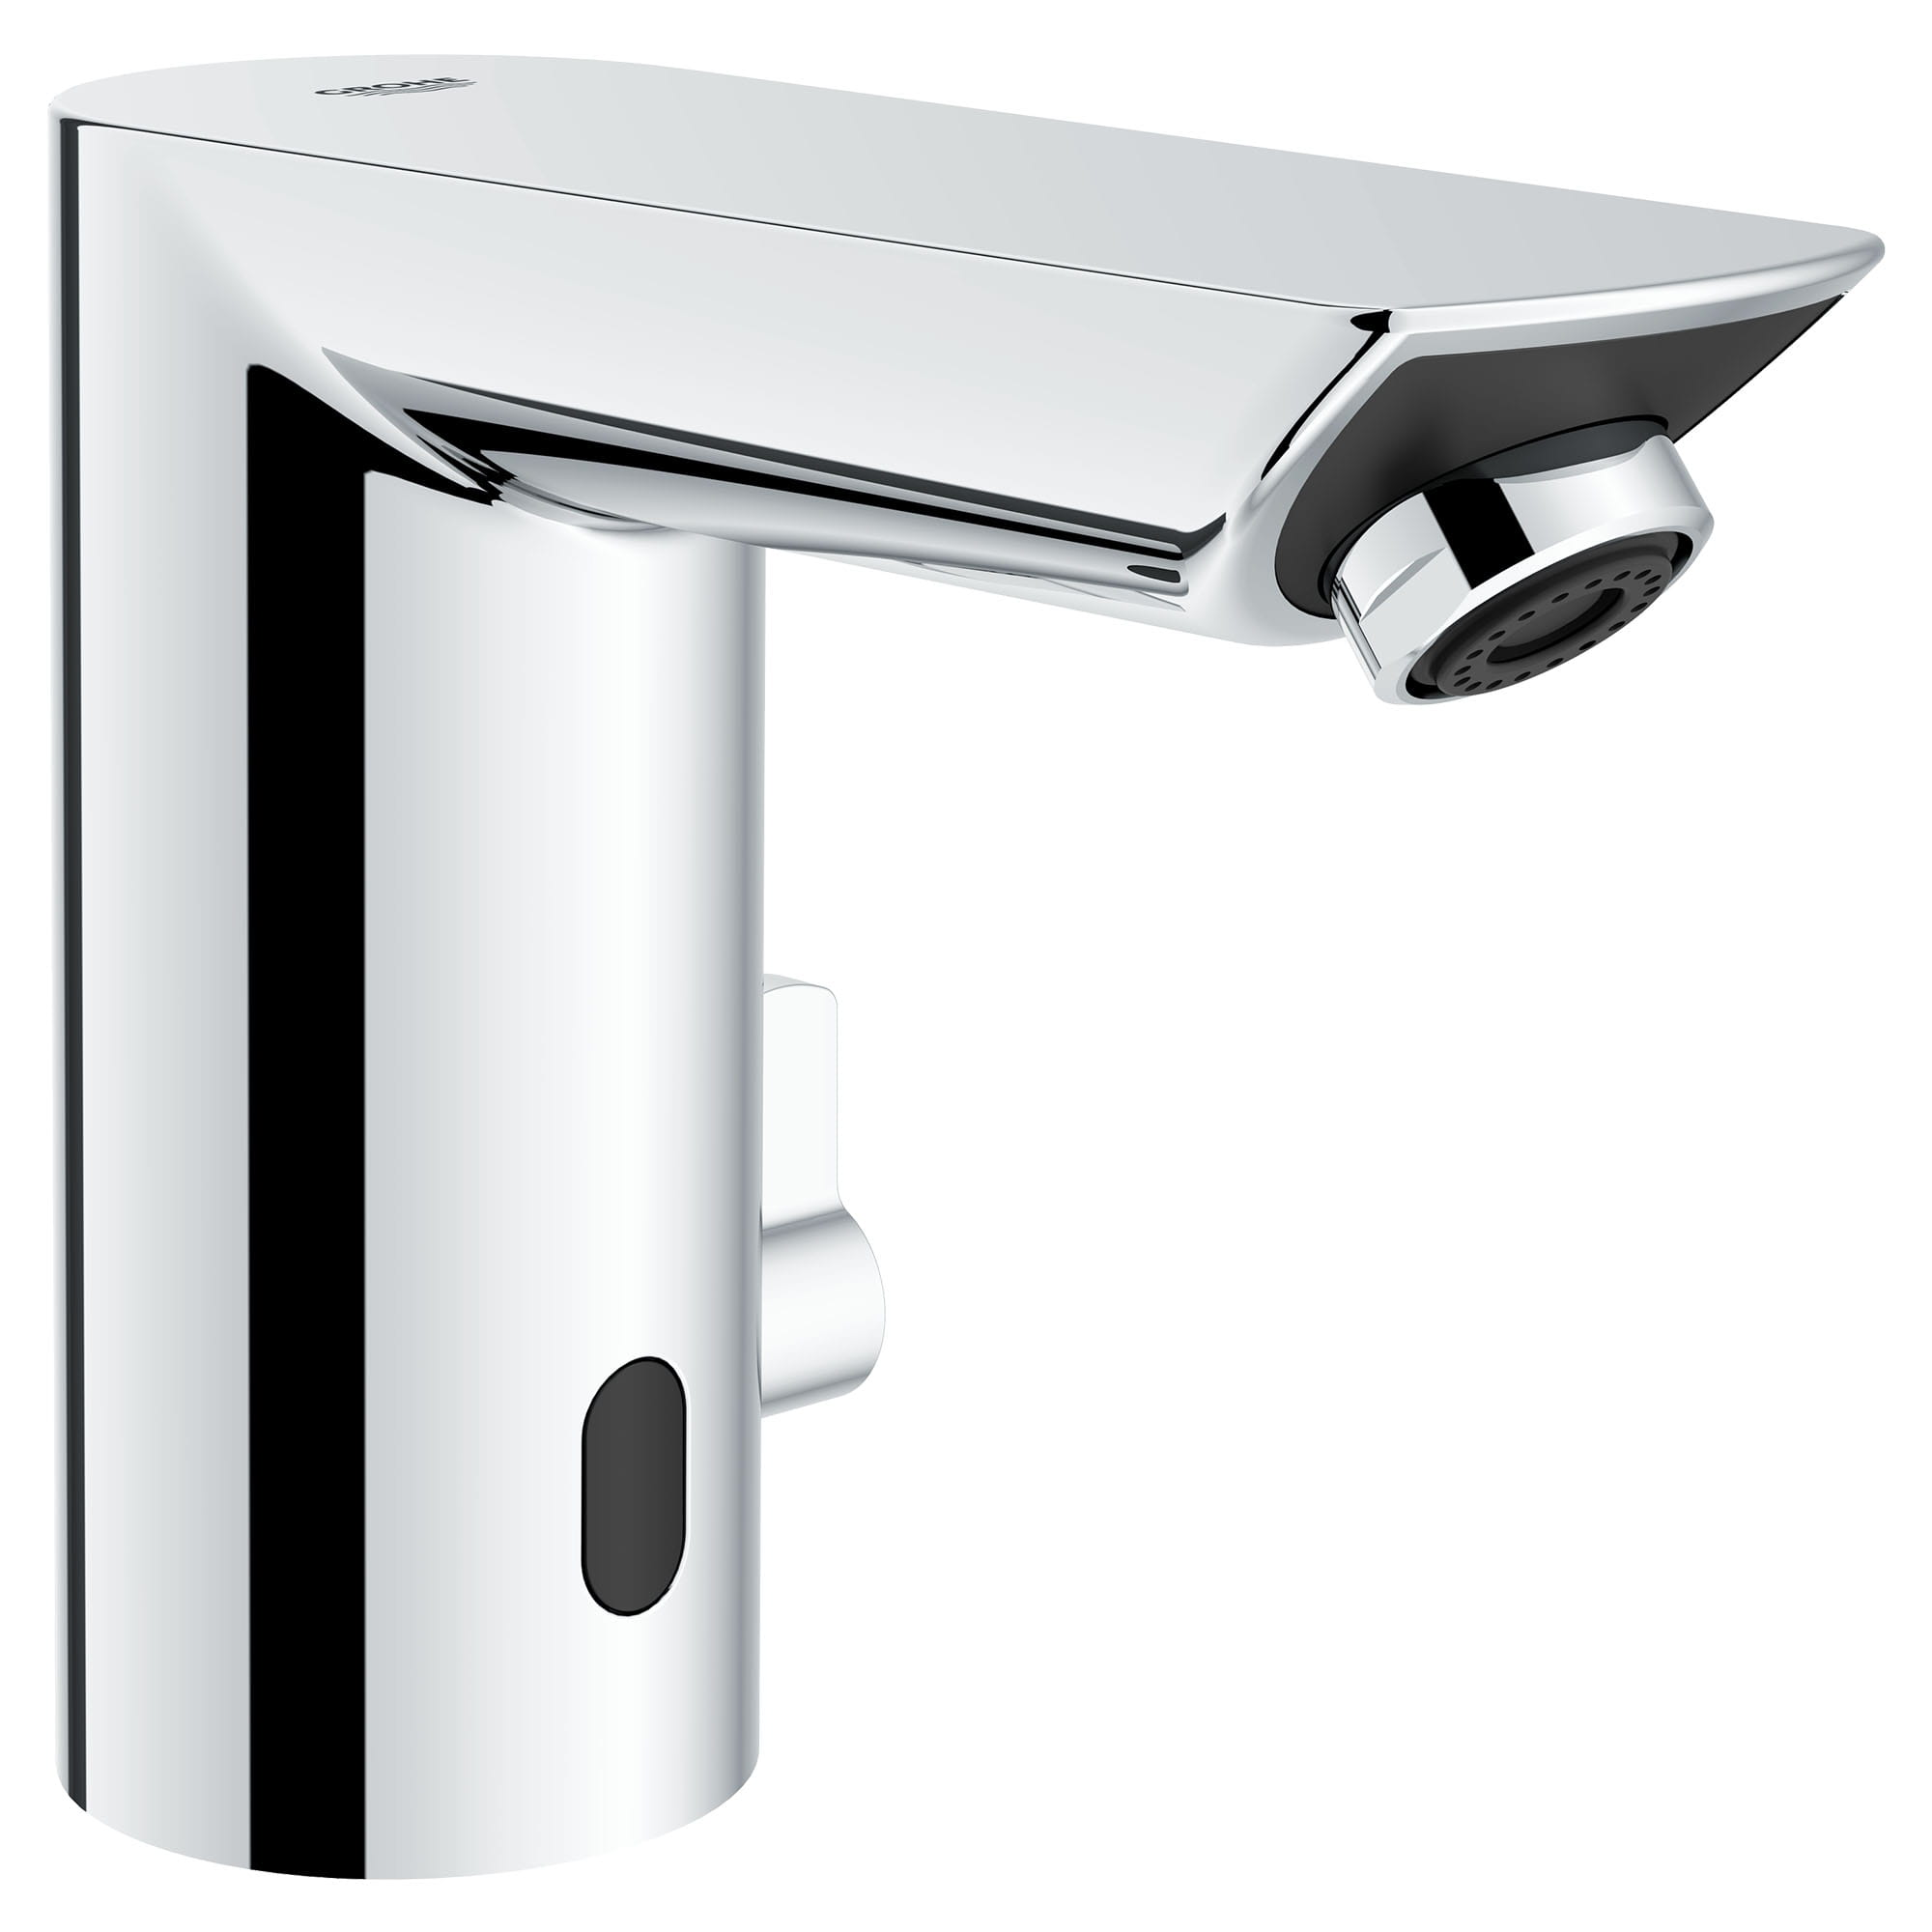 e touchless electronic faucet with temperature control lever ac powered